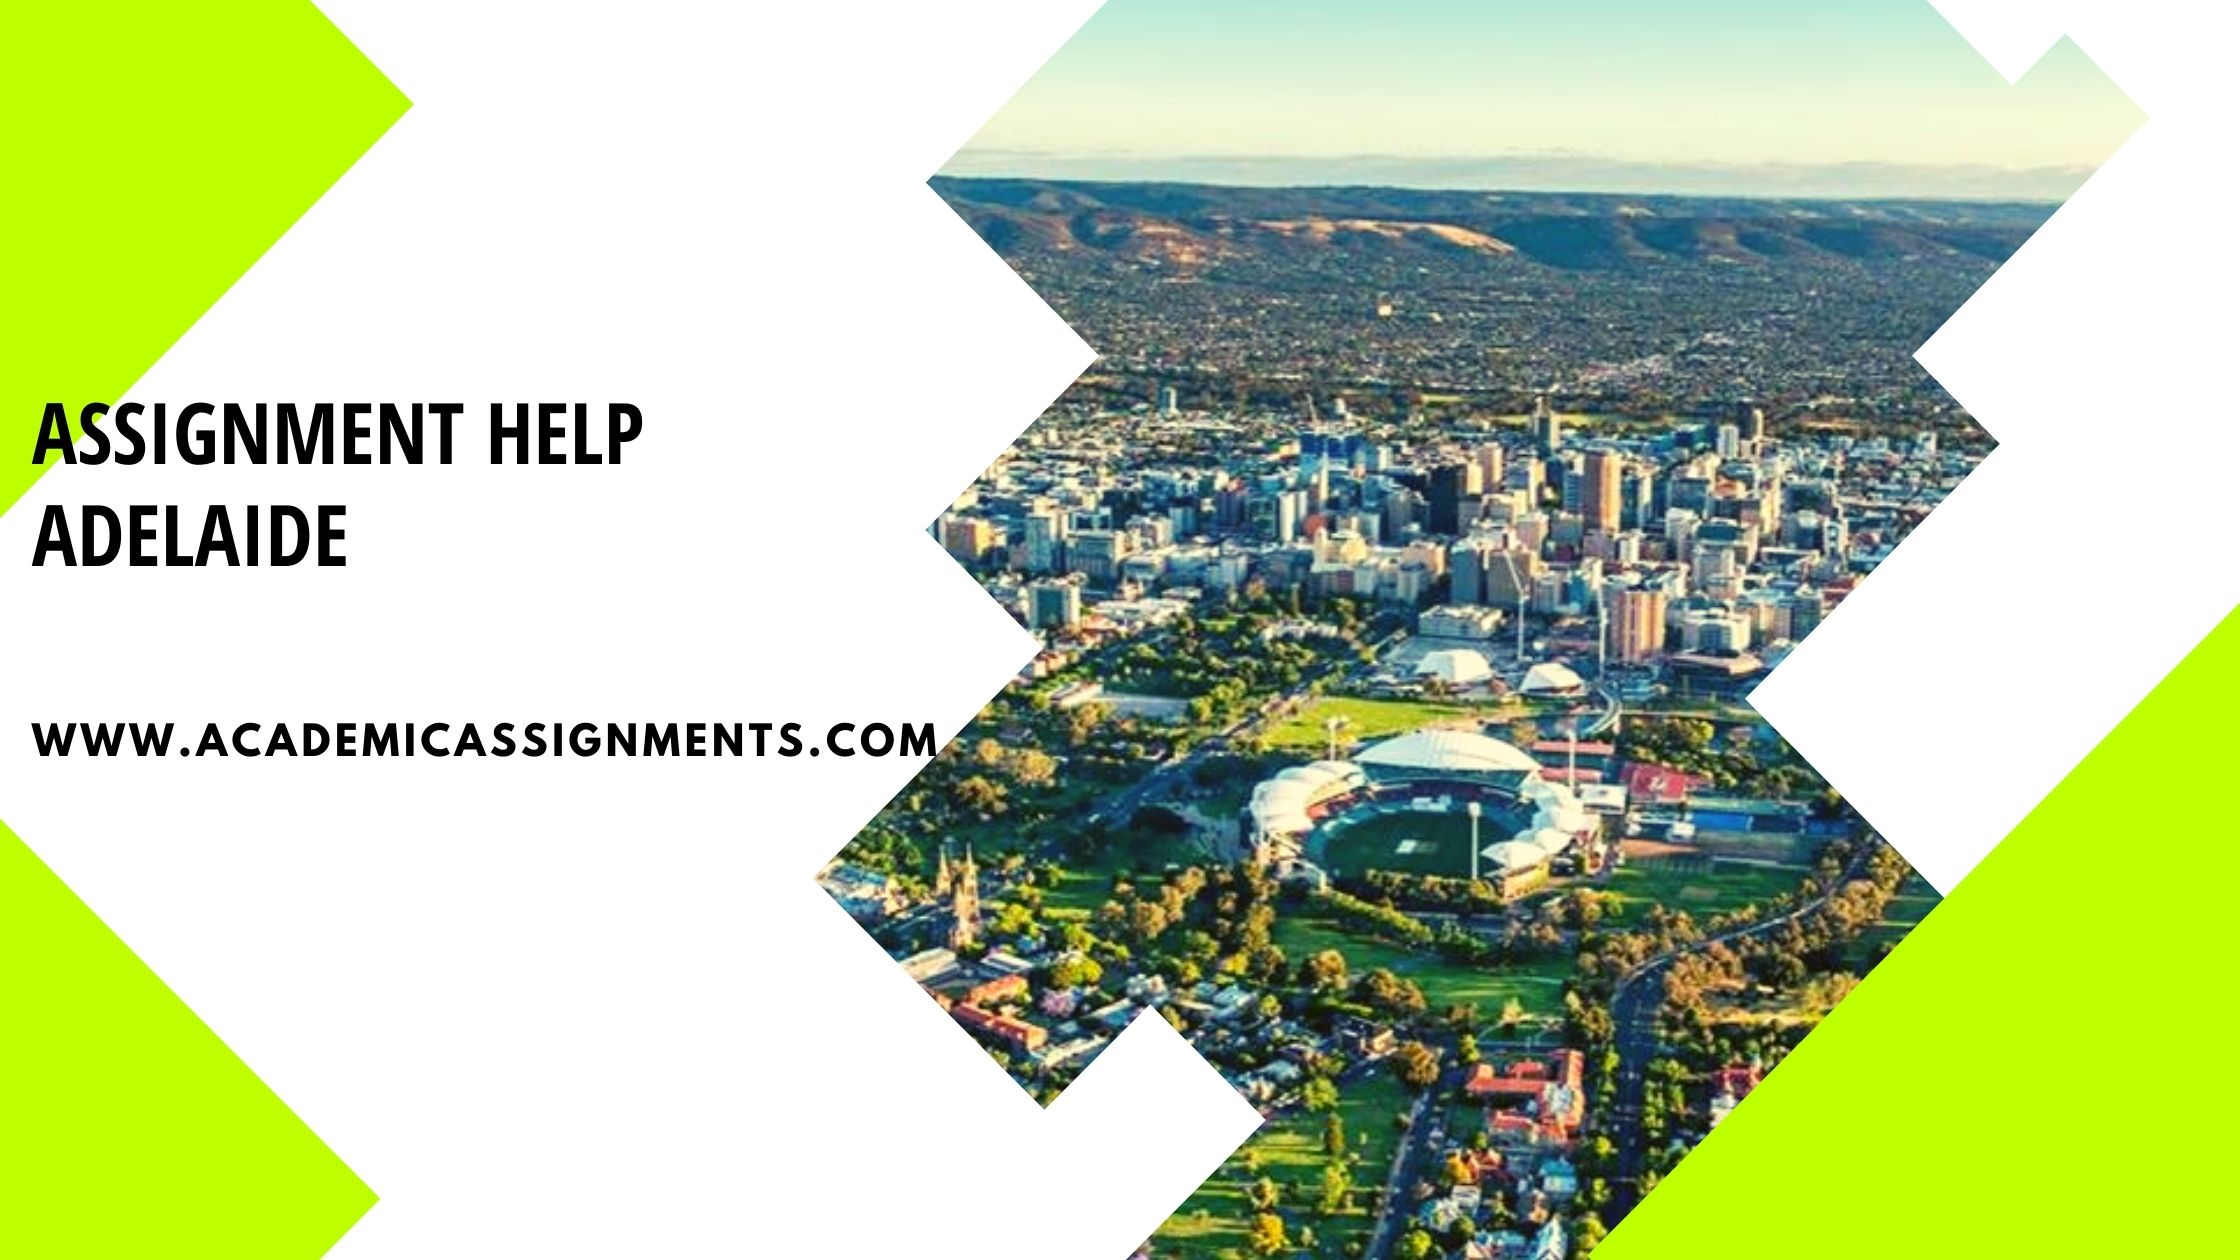 Assignment Help Adelaide